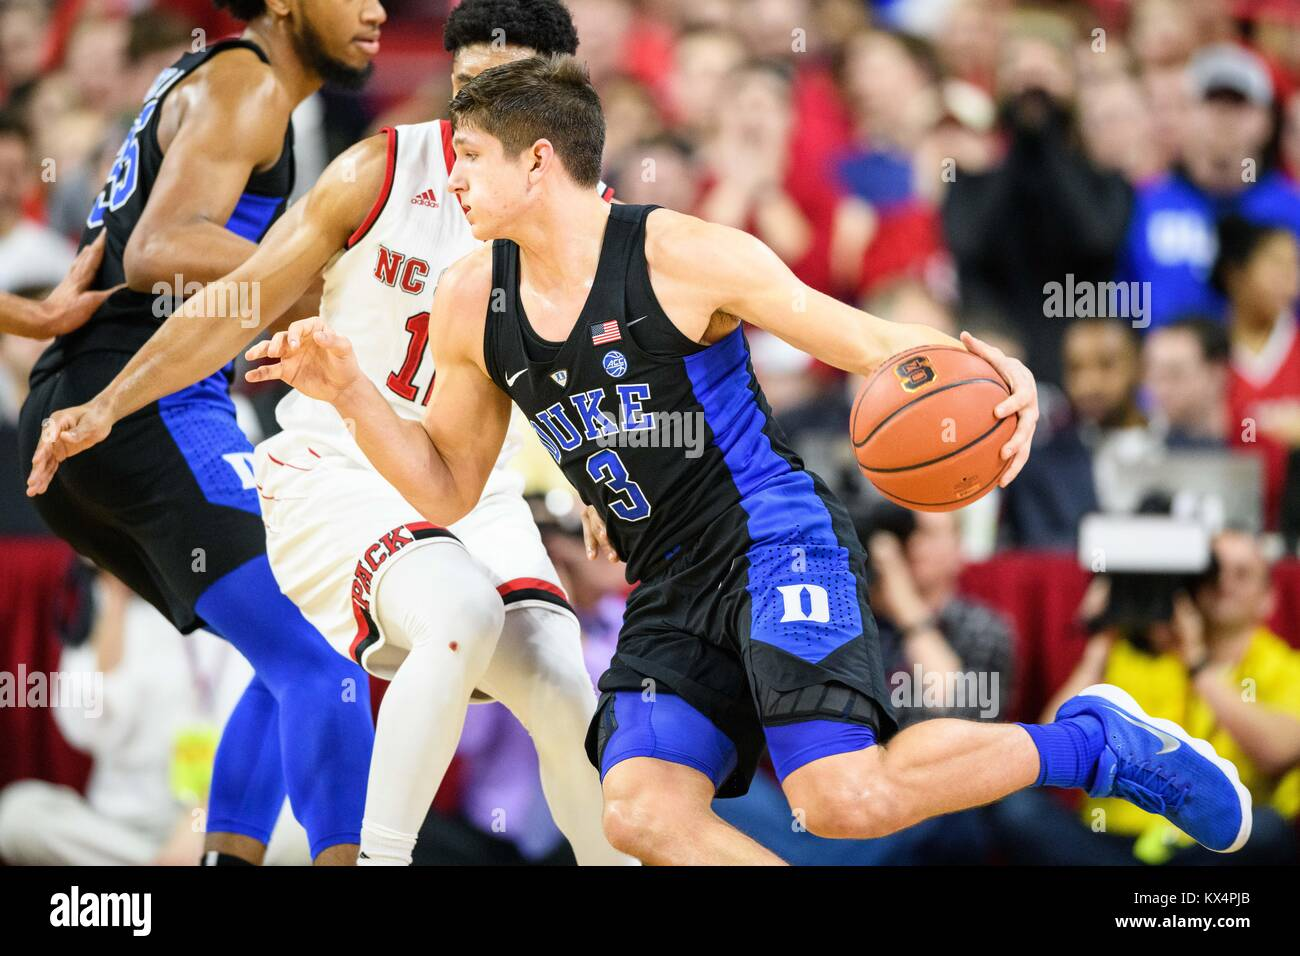 c88bca5403f0 Duke Blue Devils guard Grayson Allen (3) during the NCAA College Basketball  game between the Duke Blue Devils and the NC State Wolfpack at PNC Arena on  ...